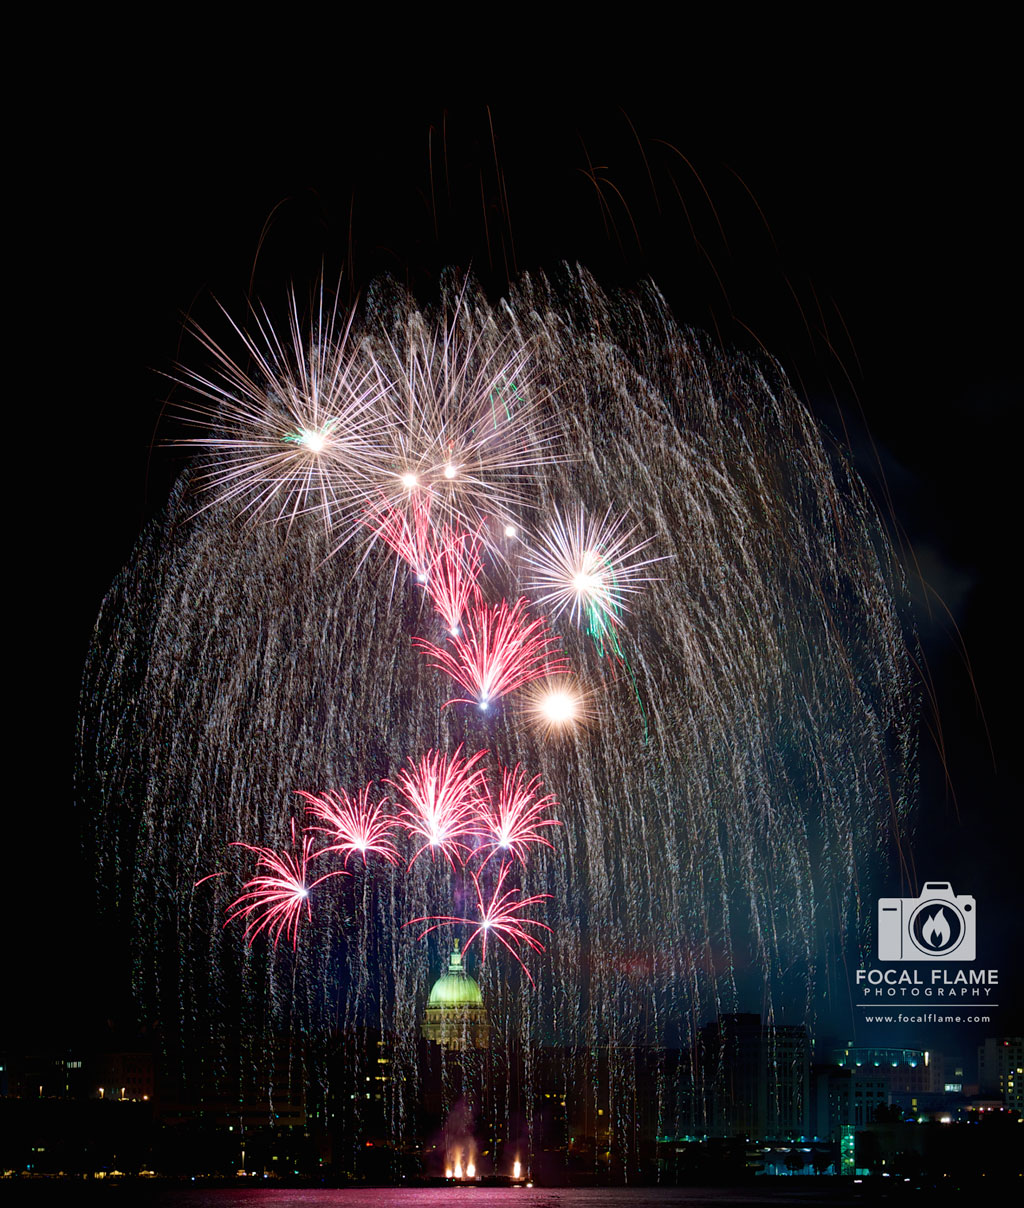 Rhythms Of Nature Without Booms >> Behind The Lens Rhythm And Booms Focal Flame Photography Madison Wi